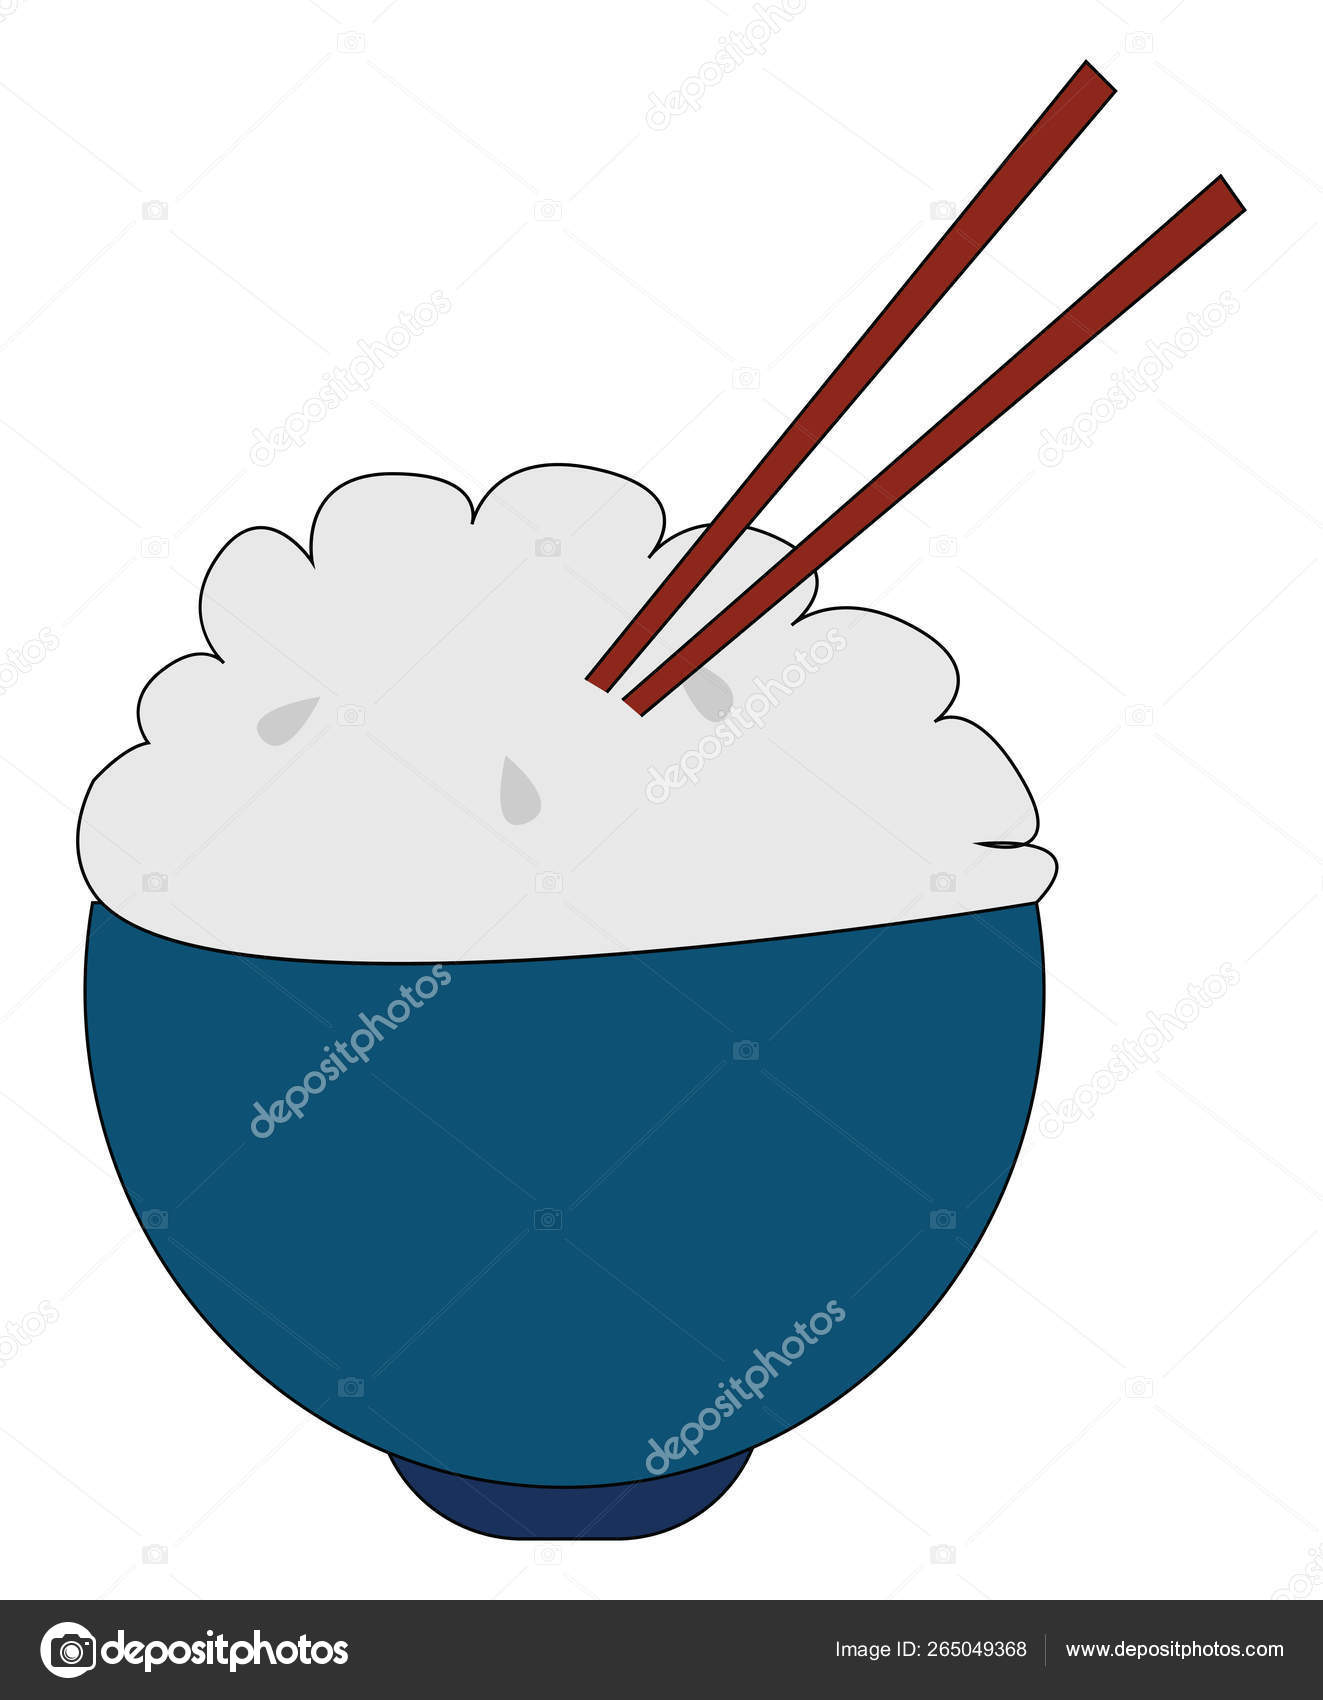 Clipart of a bowl of rice with two wooden spatulas vector or col.